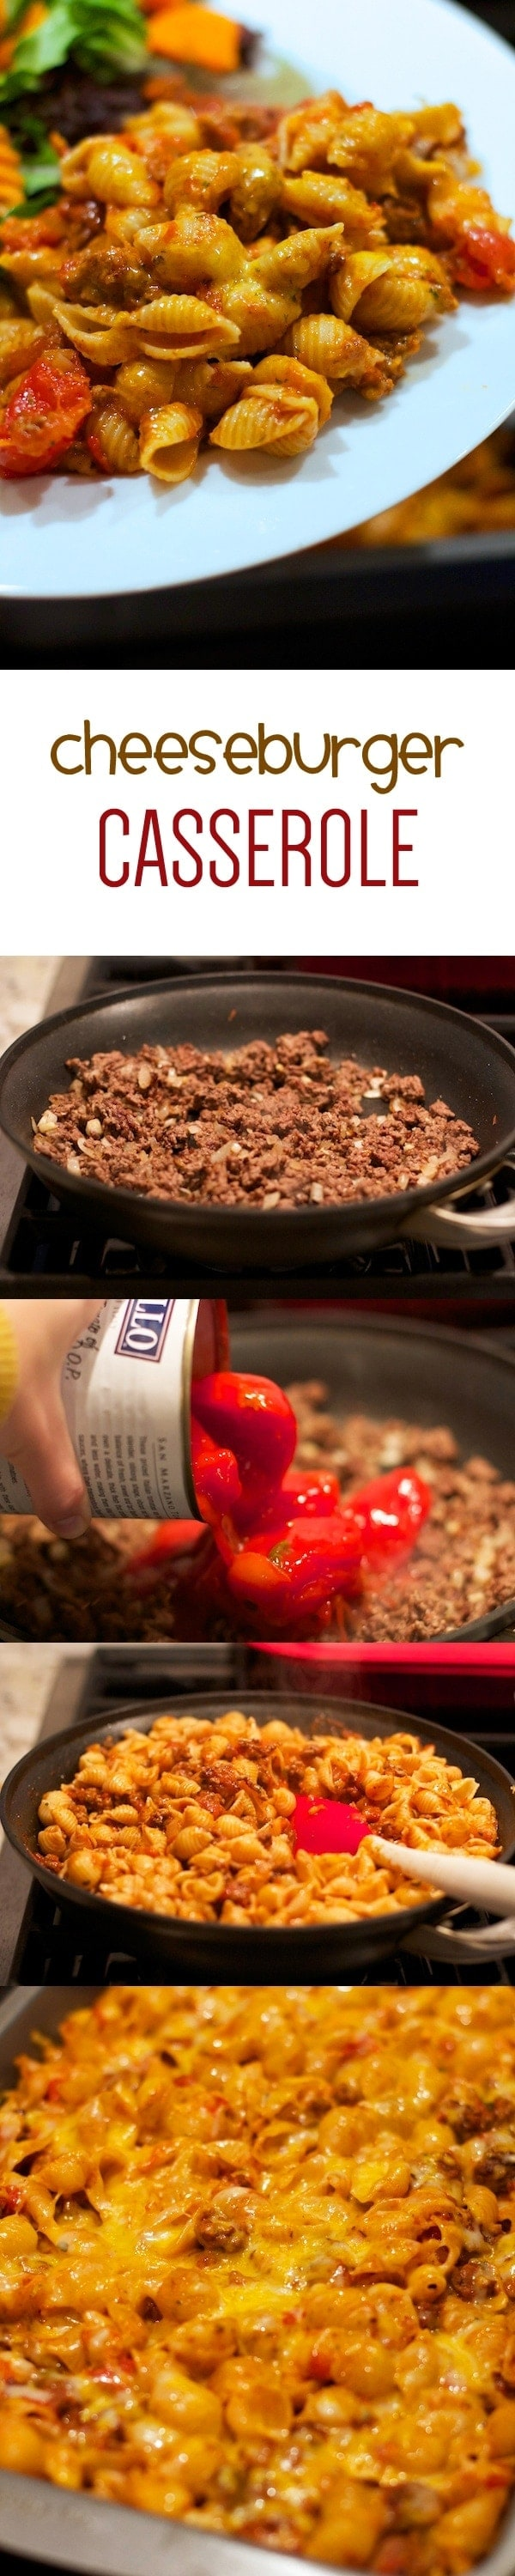 Adding Tomatoes to Ground Beef Mixture